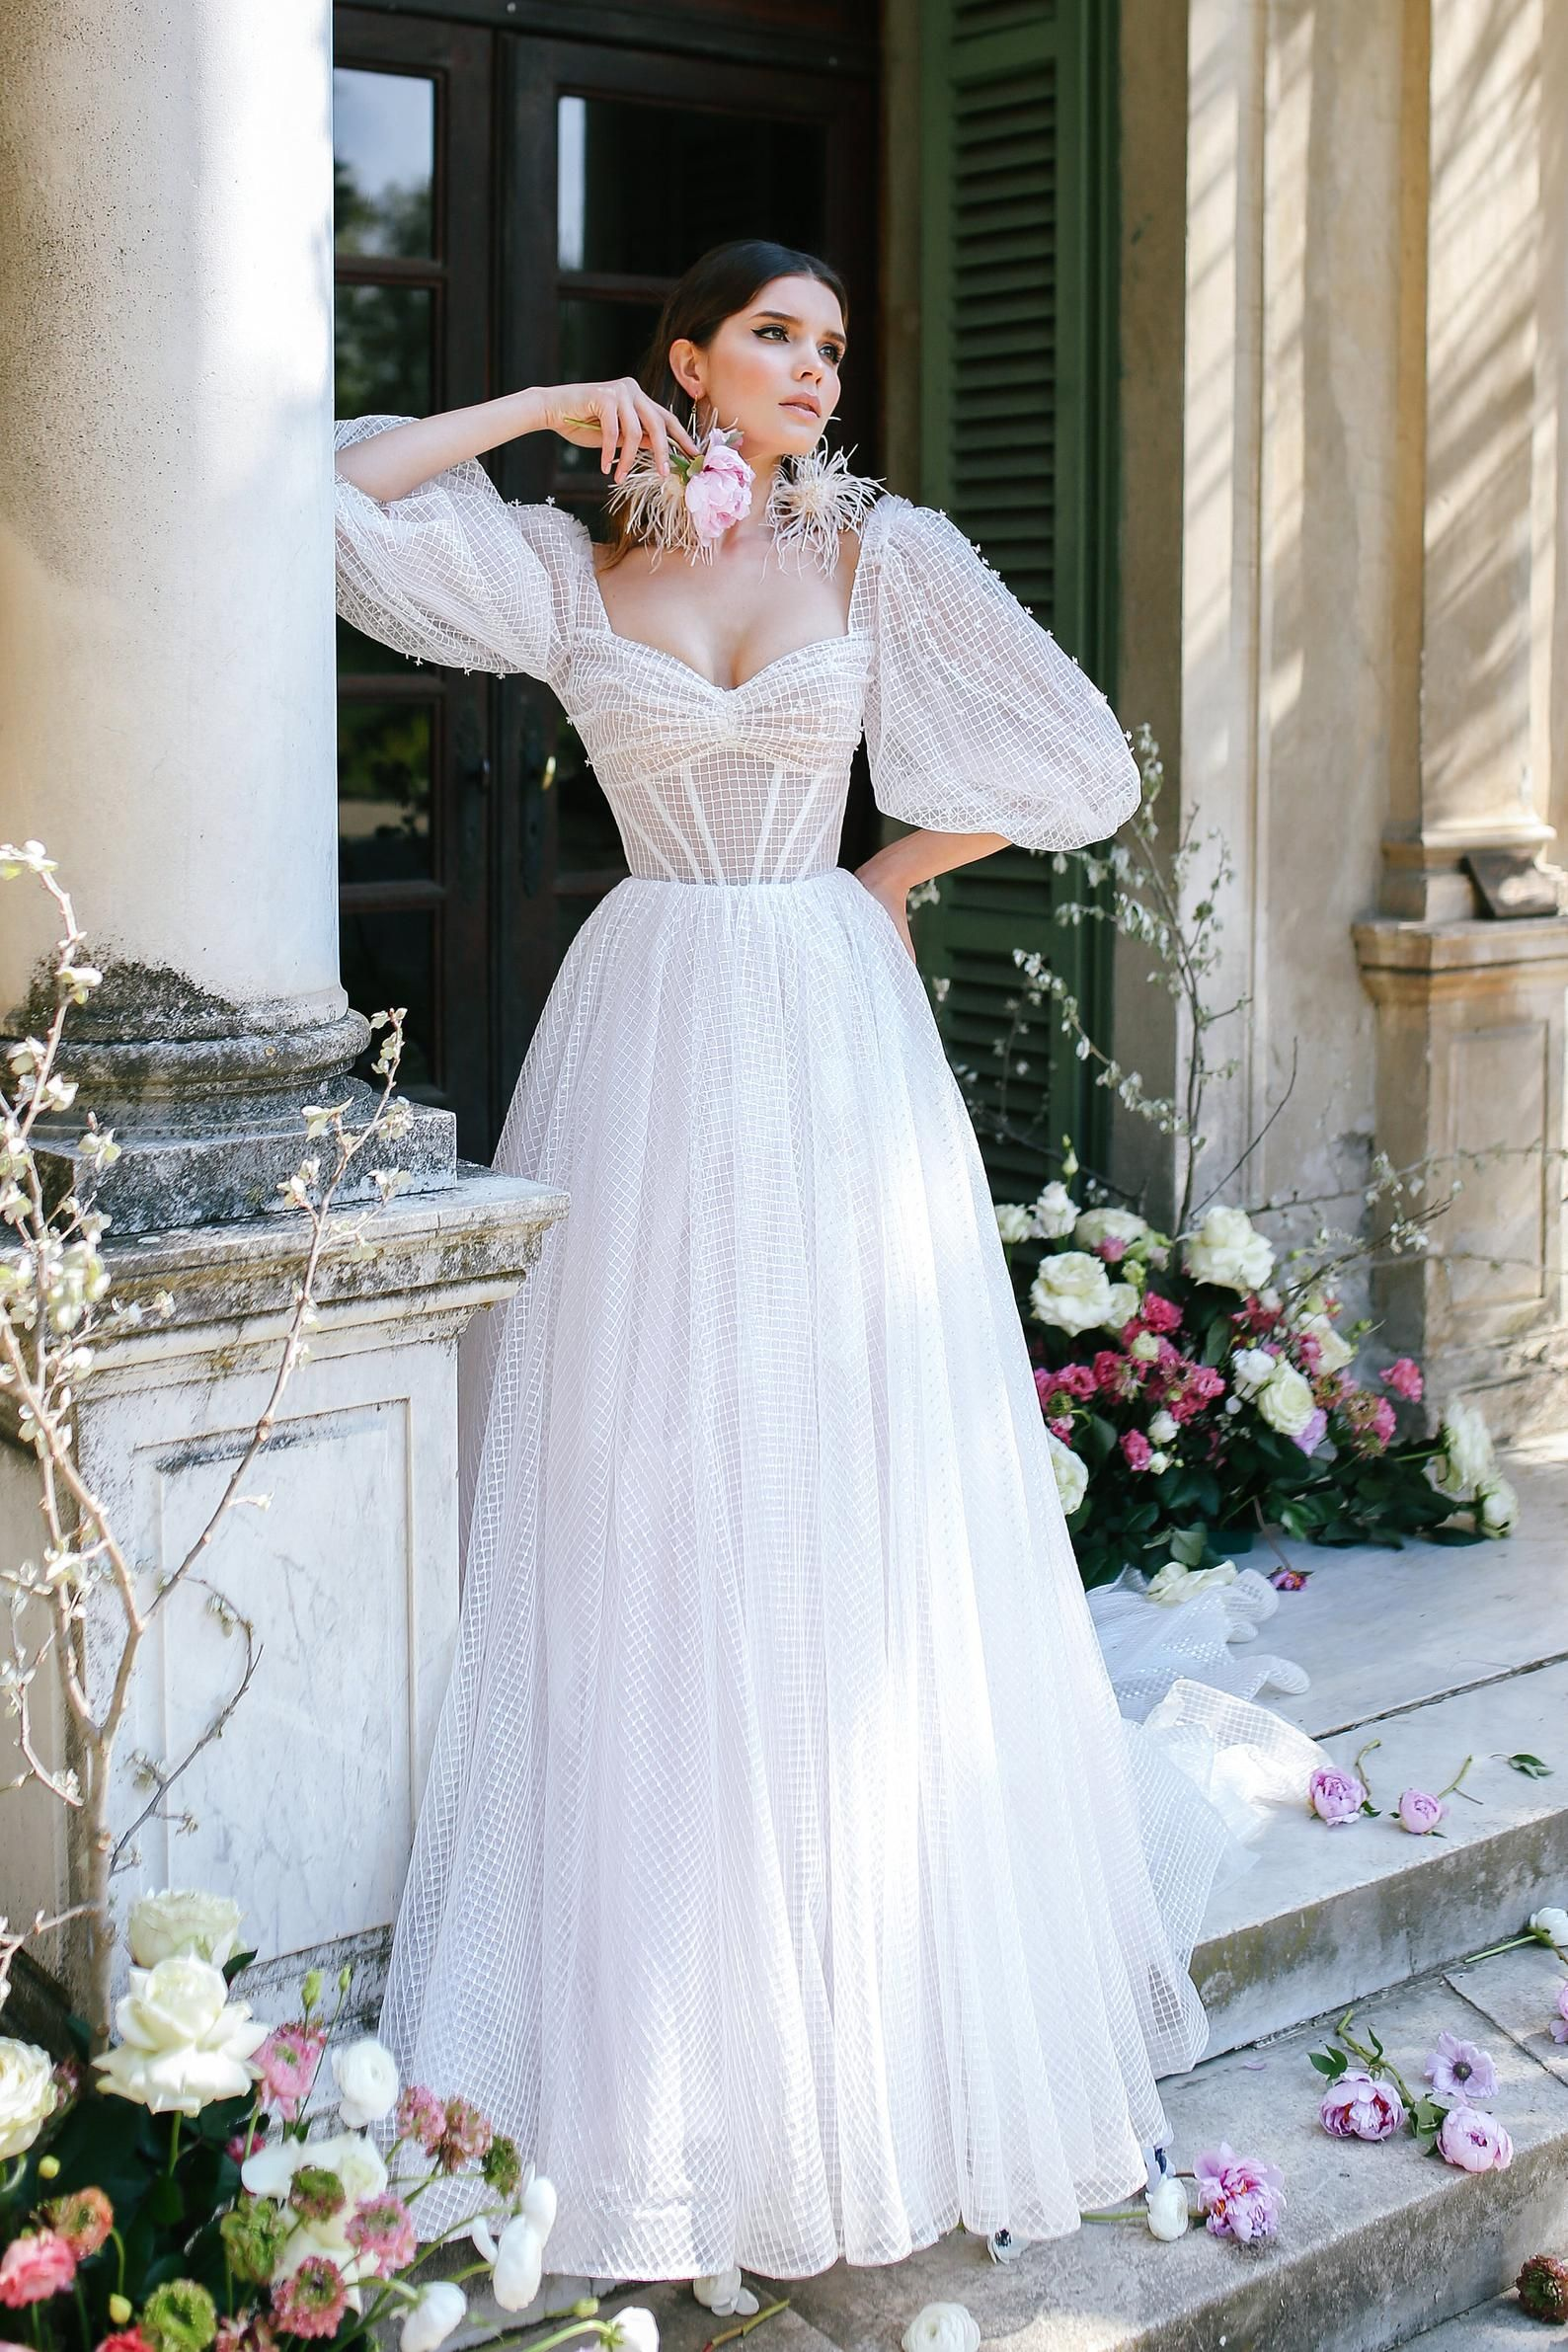 Pin On Wedding Dresses I Love 831